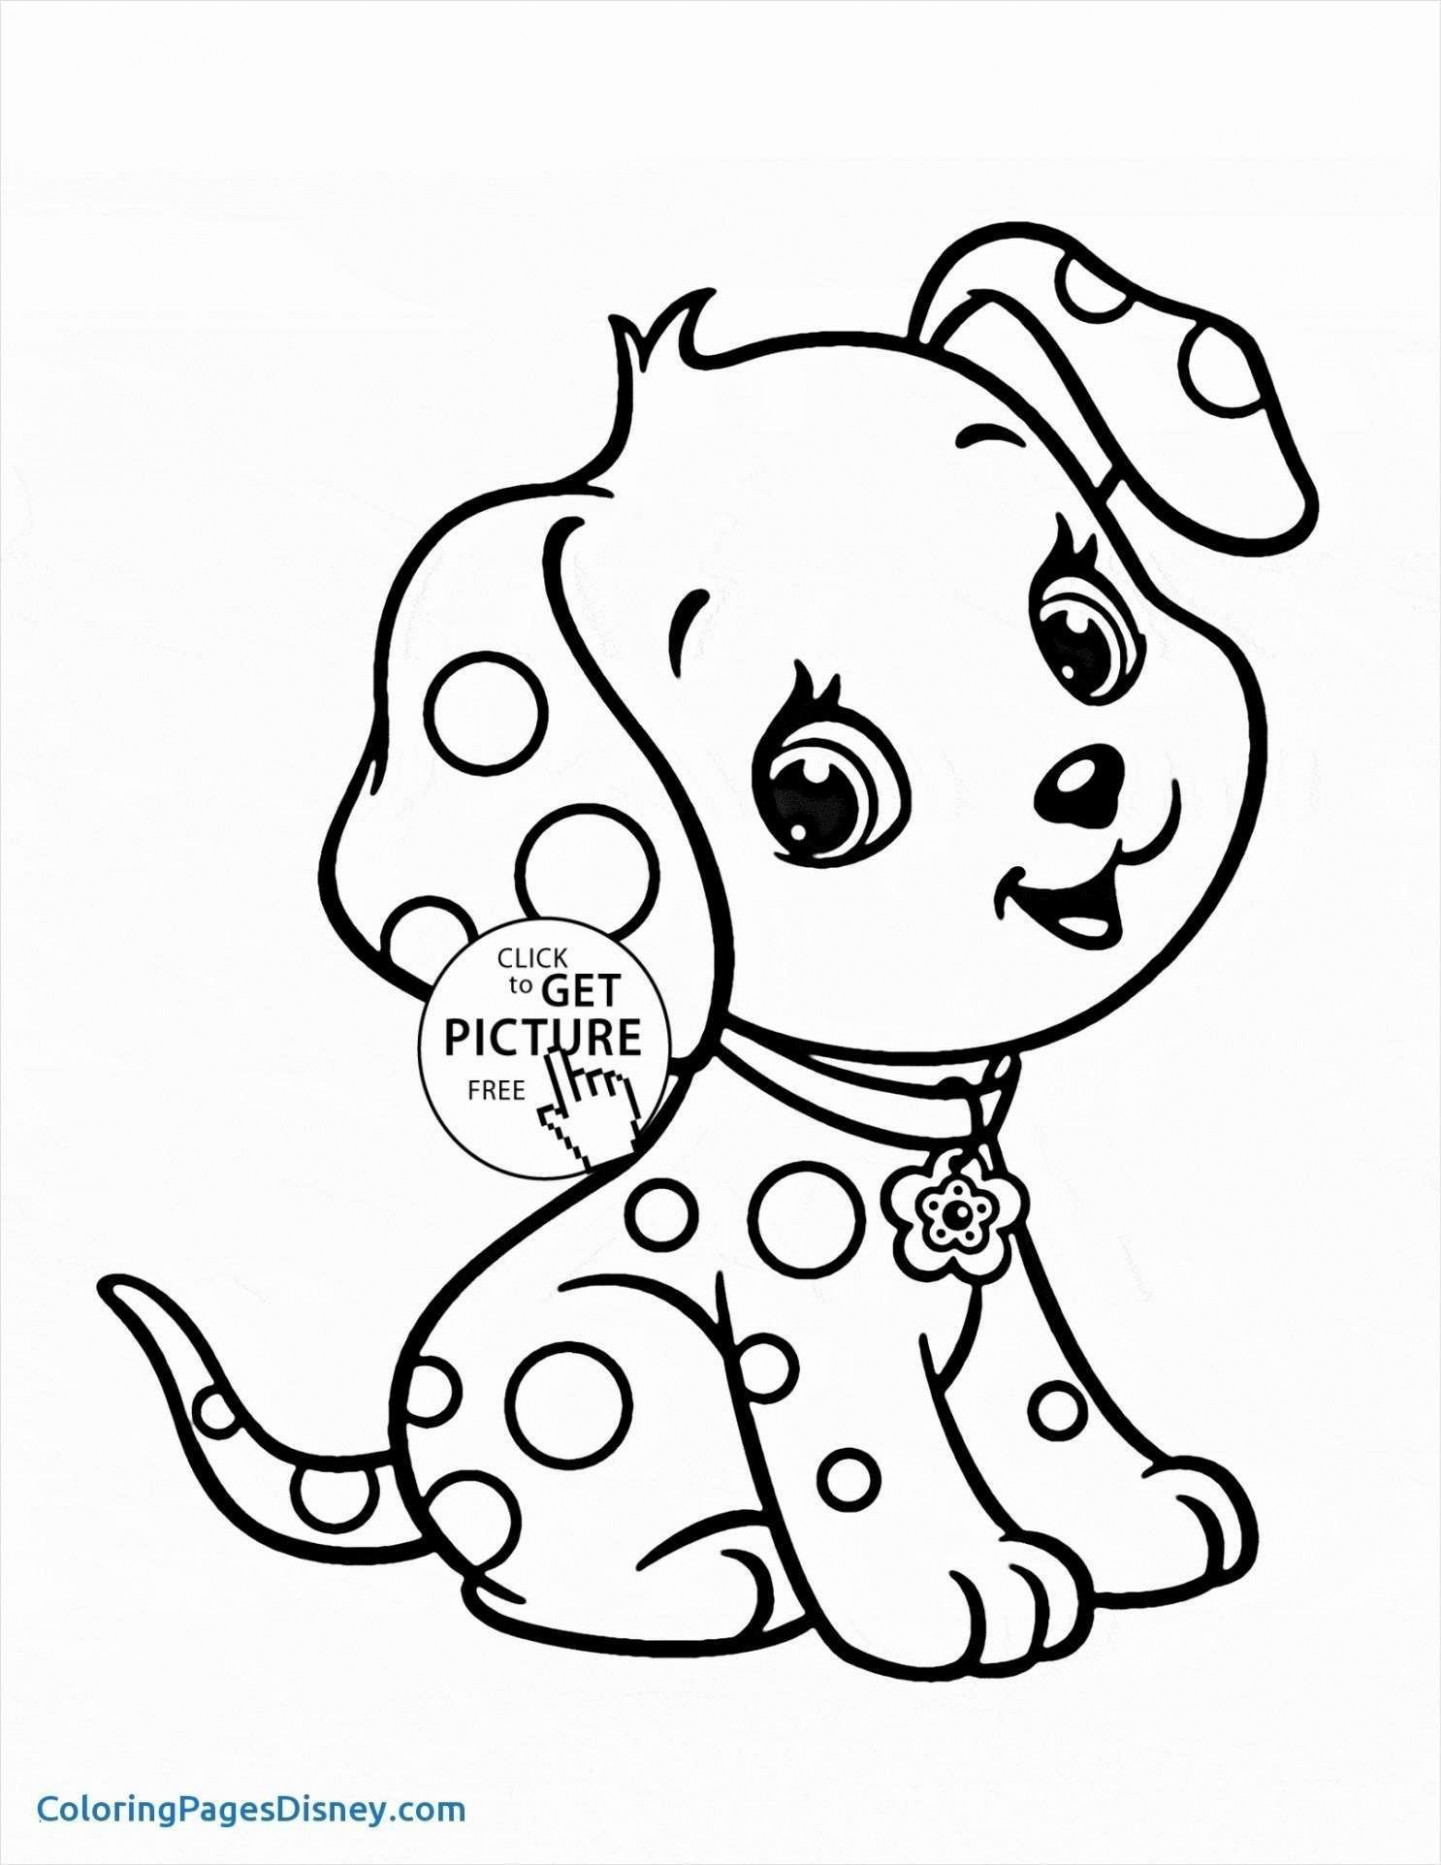 Coloring Book World: Fantastic Christmas Wreath Coloring Pages. Free ...